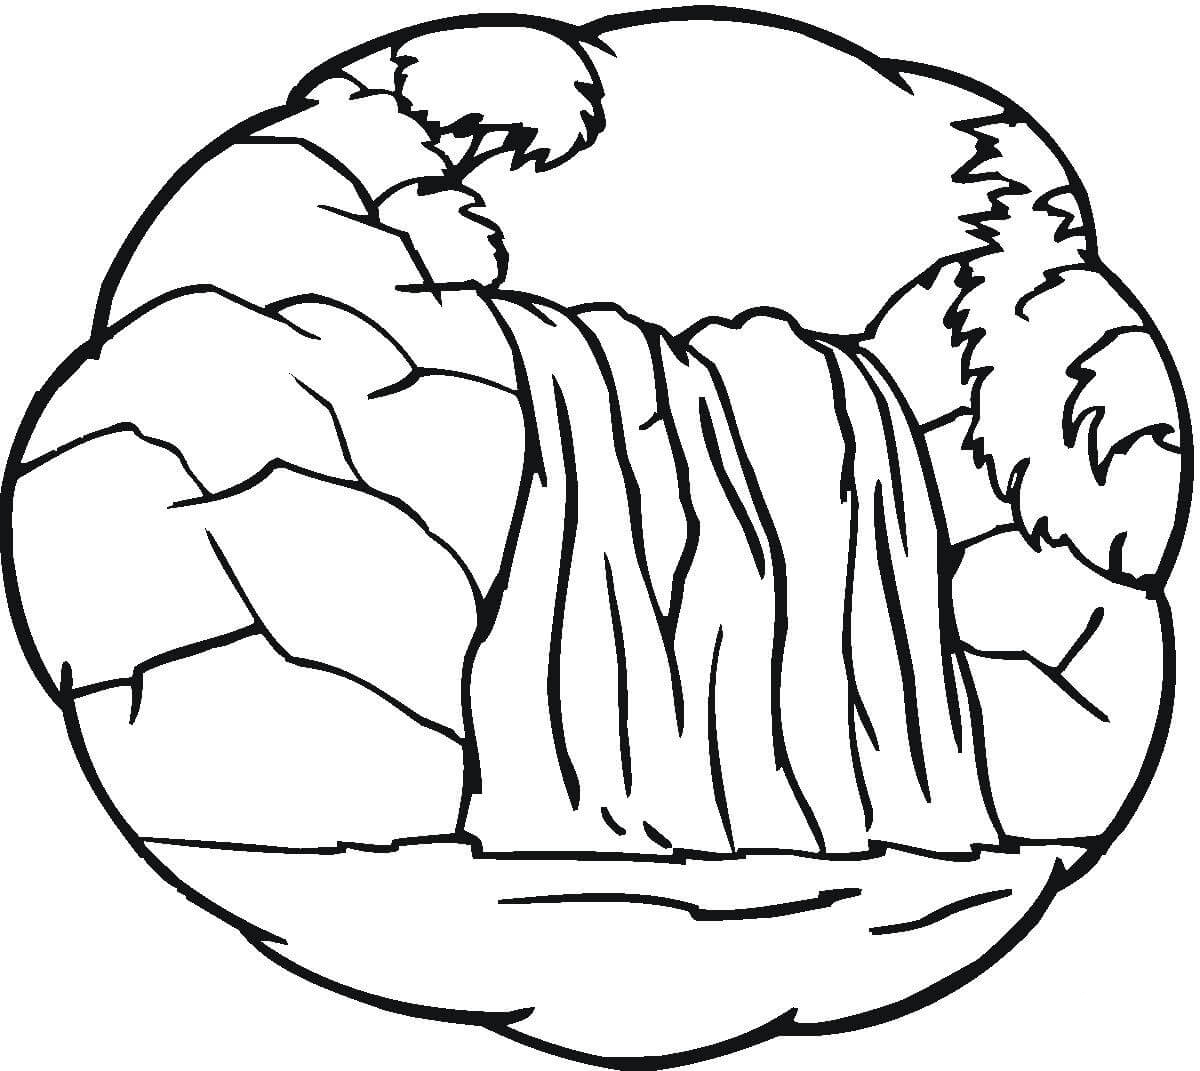 Waterfall Coloring Pages Best Coloring Pages For Kids